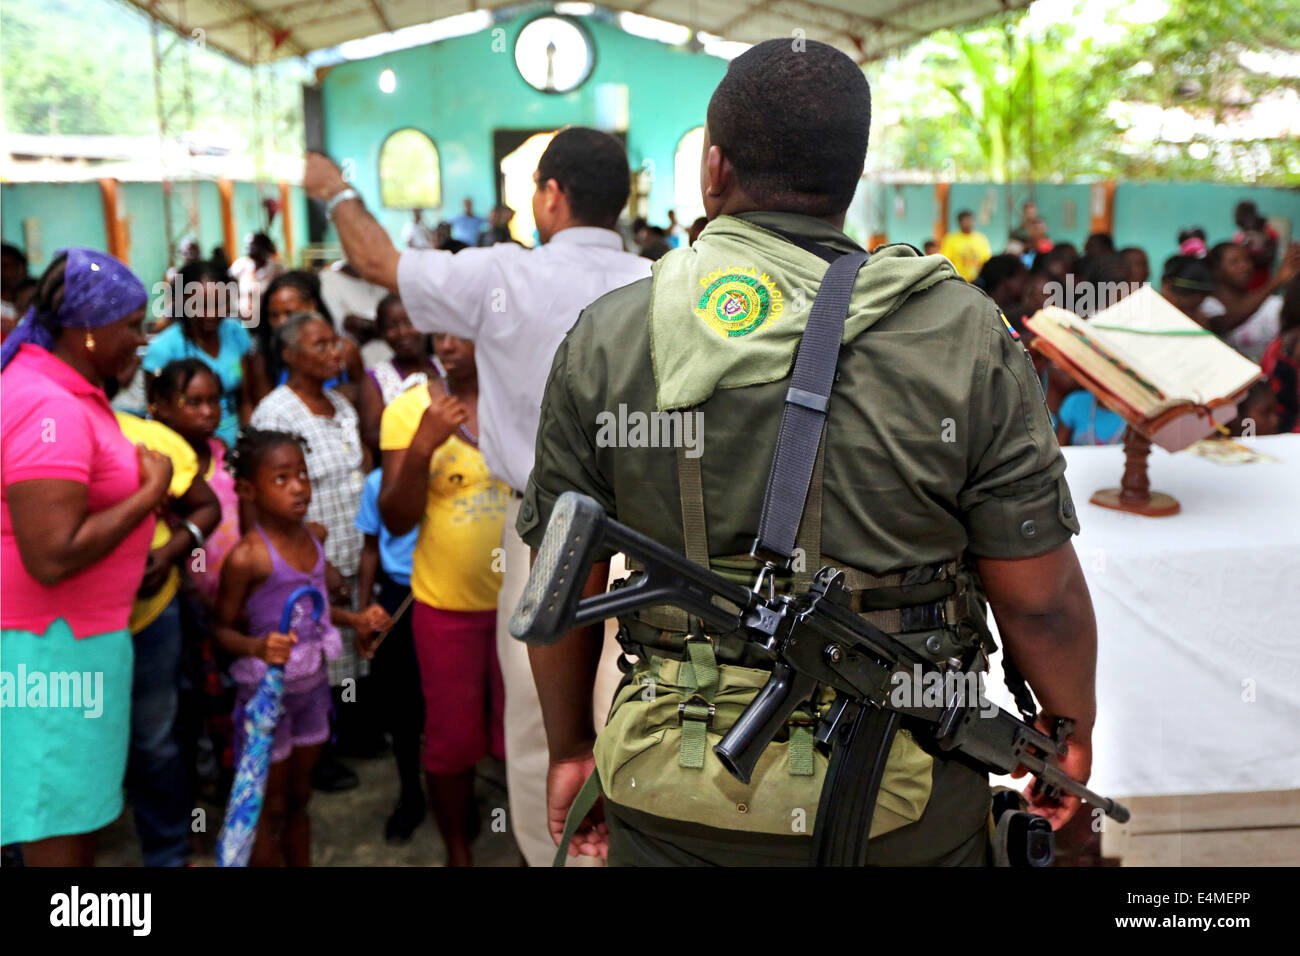 Heavily armed national policeman guarding behind the altar after a mass service in a church in Choco Province, Colombia Stock Photo